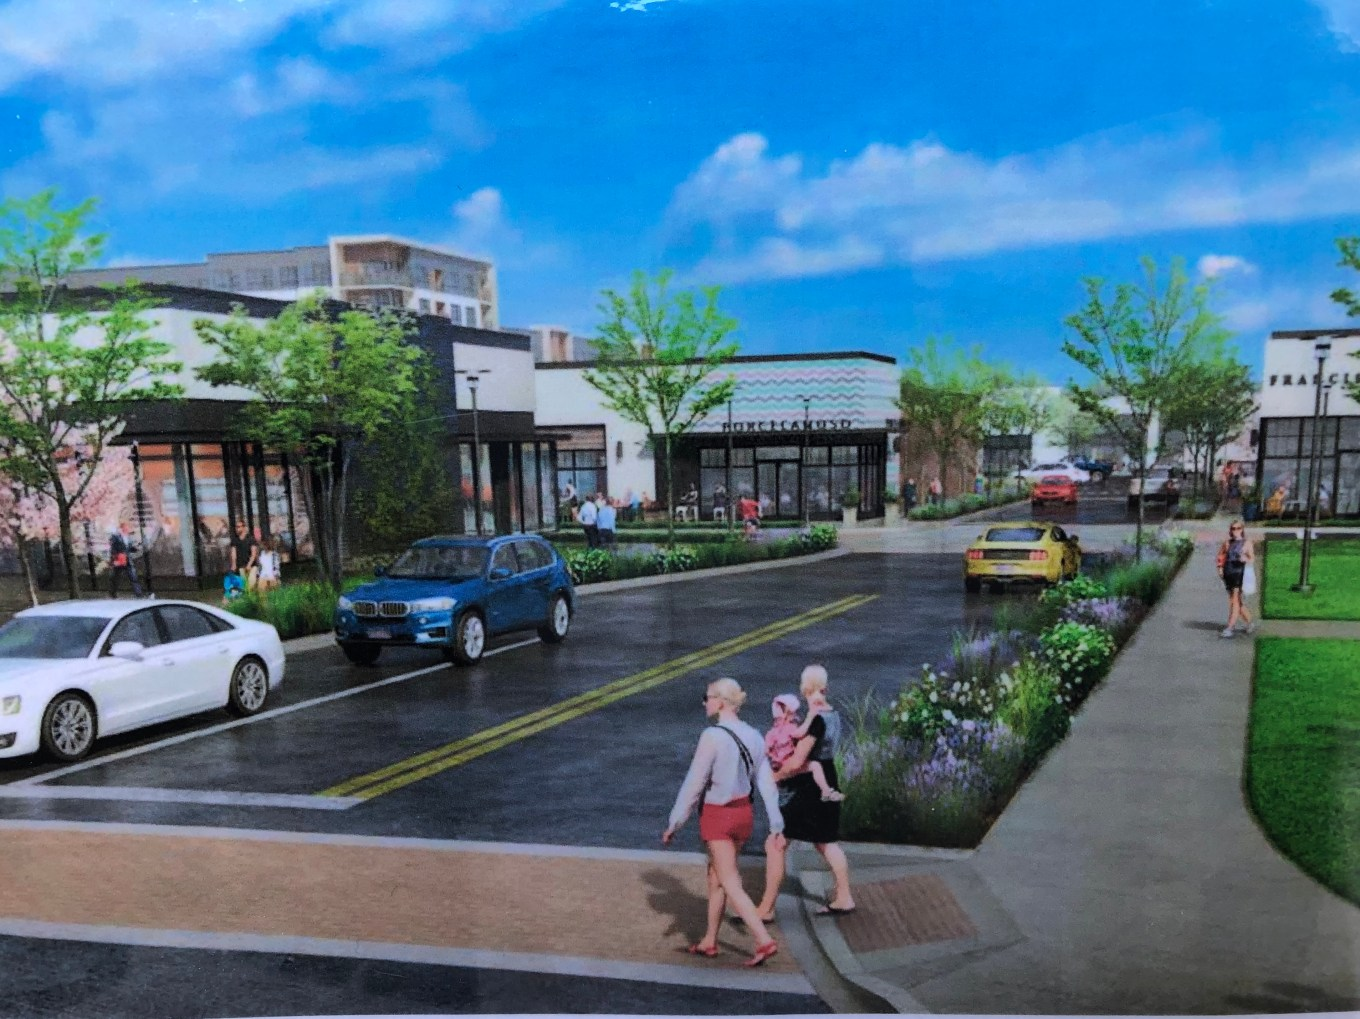 Woburn Mall rendering